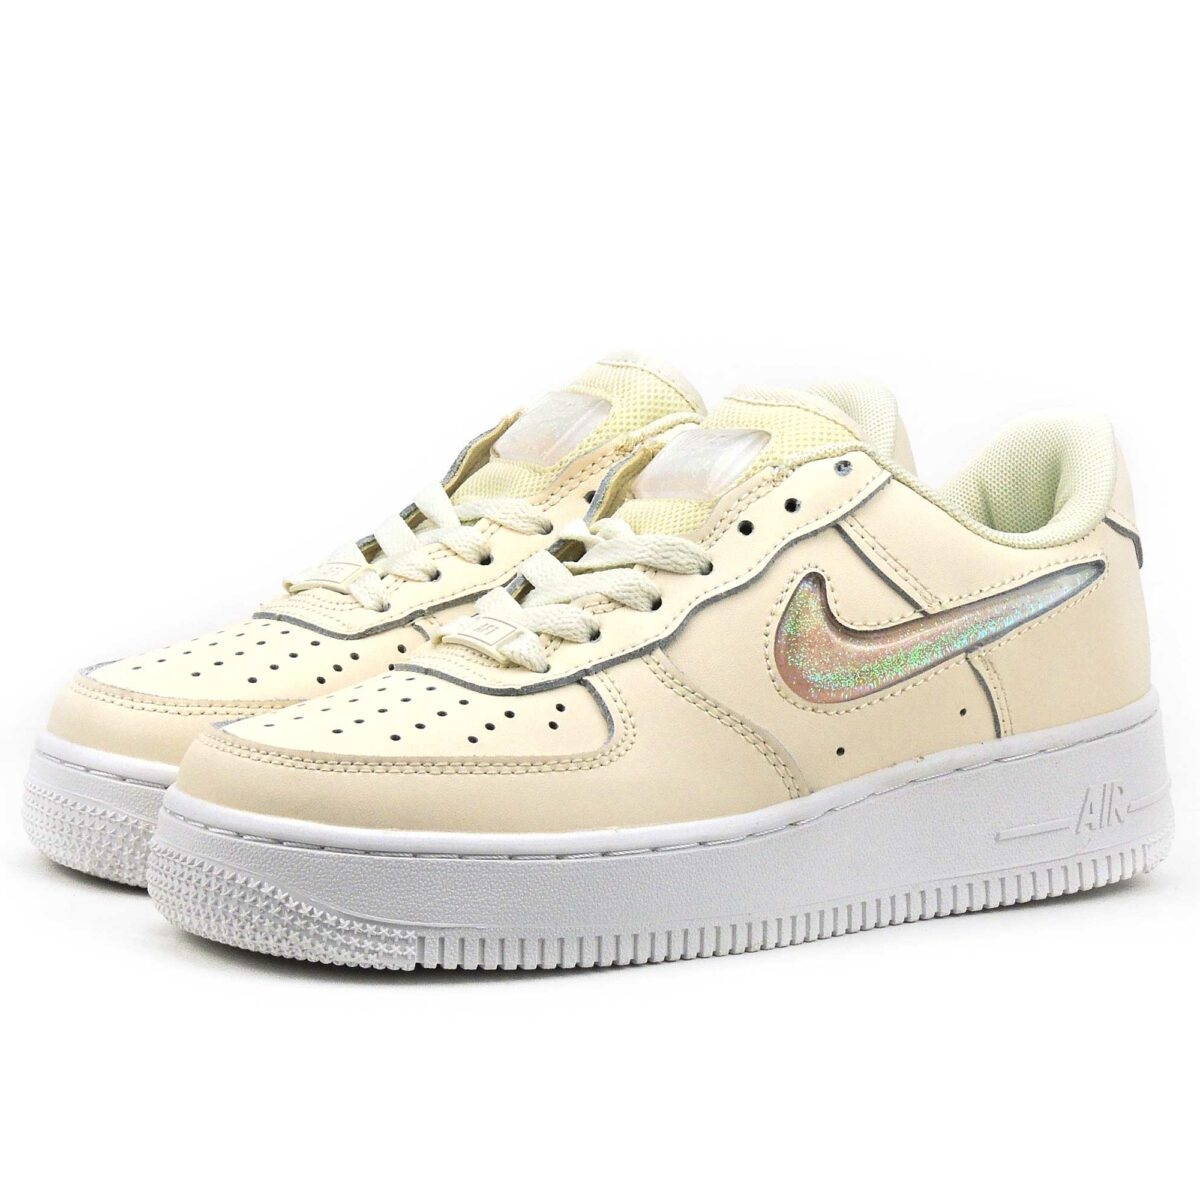 nike air force 1 07 se prm beige white AH6827_100 купить